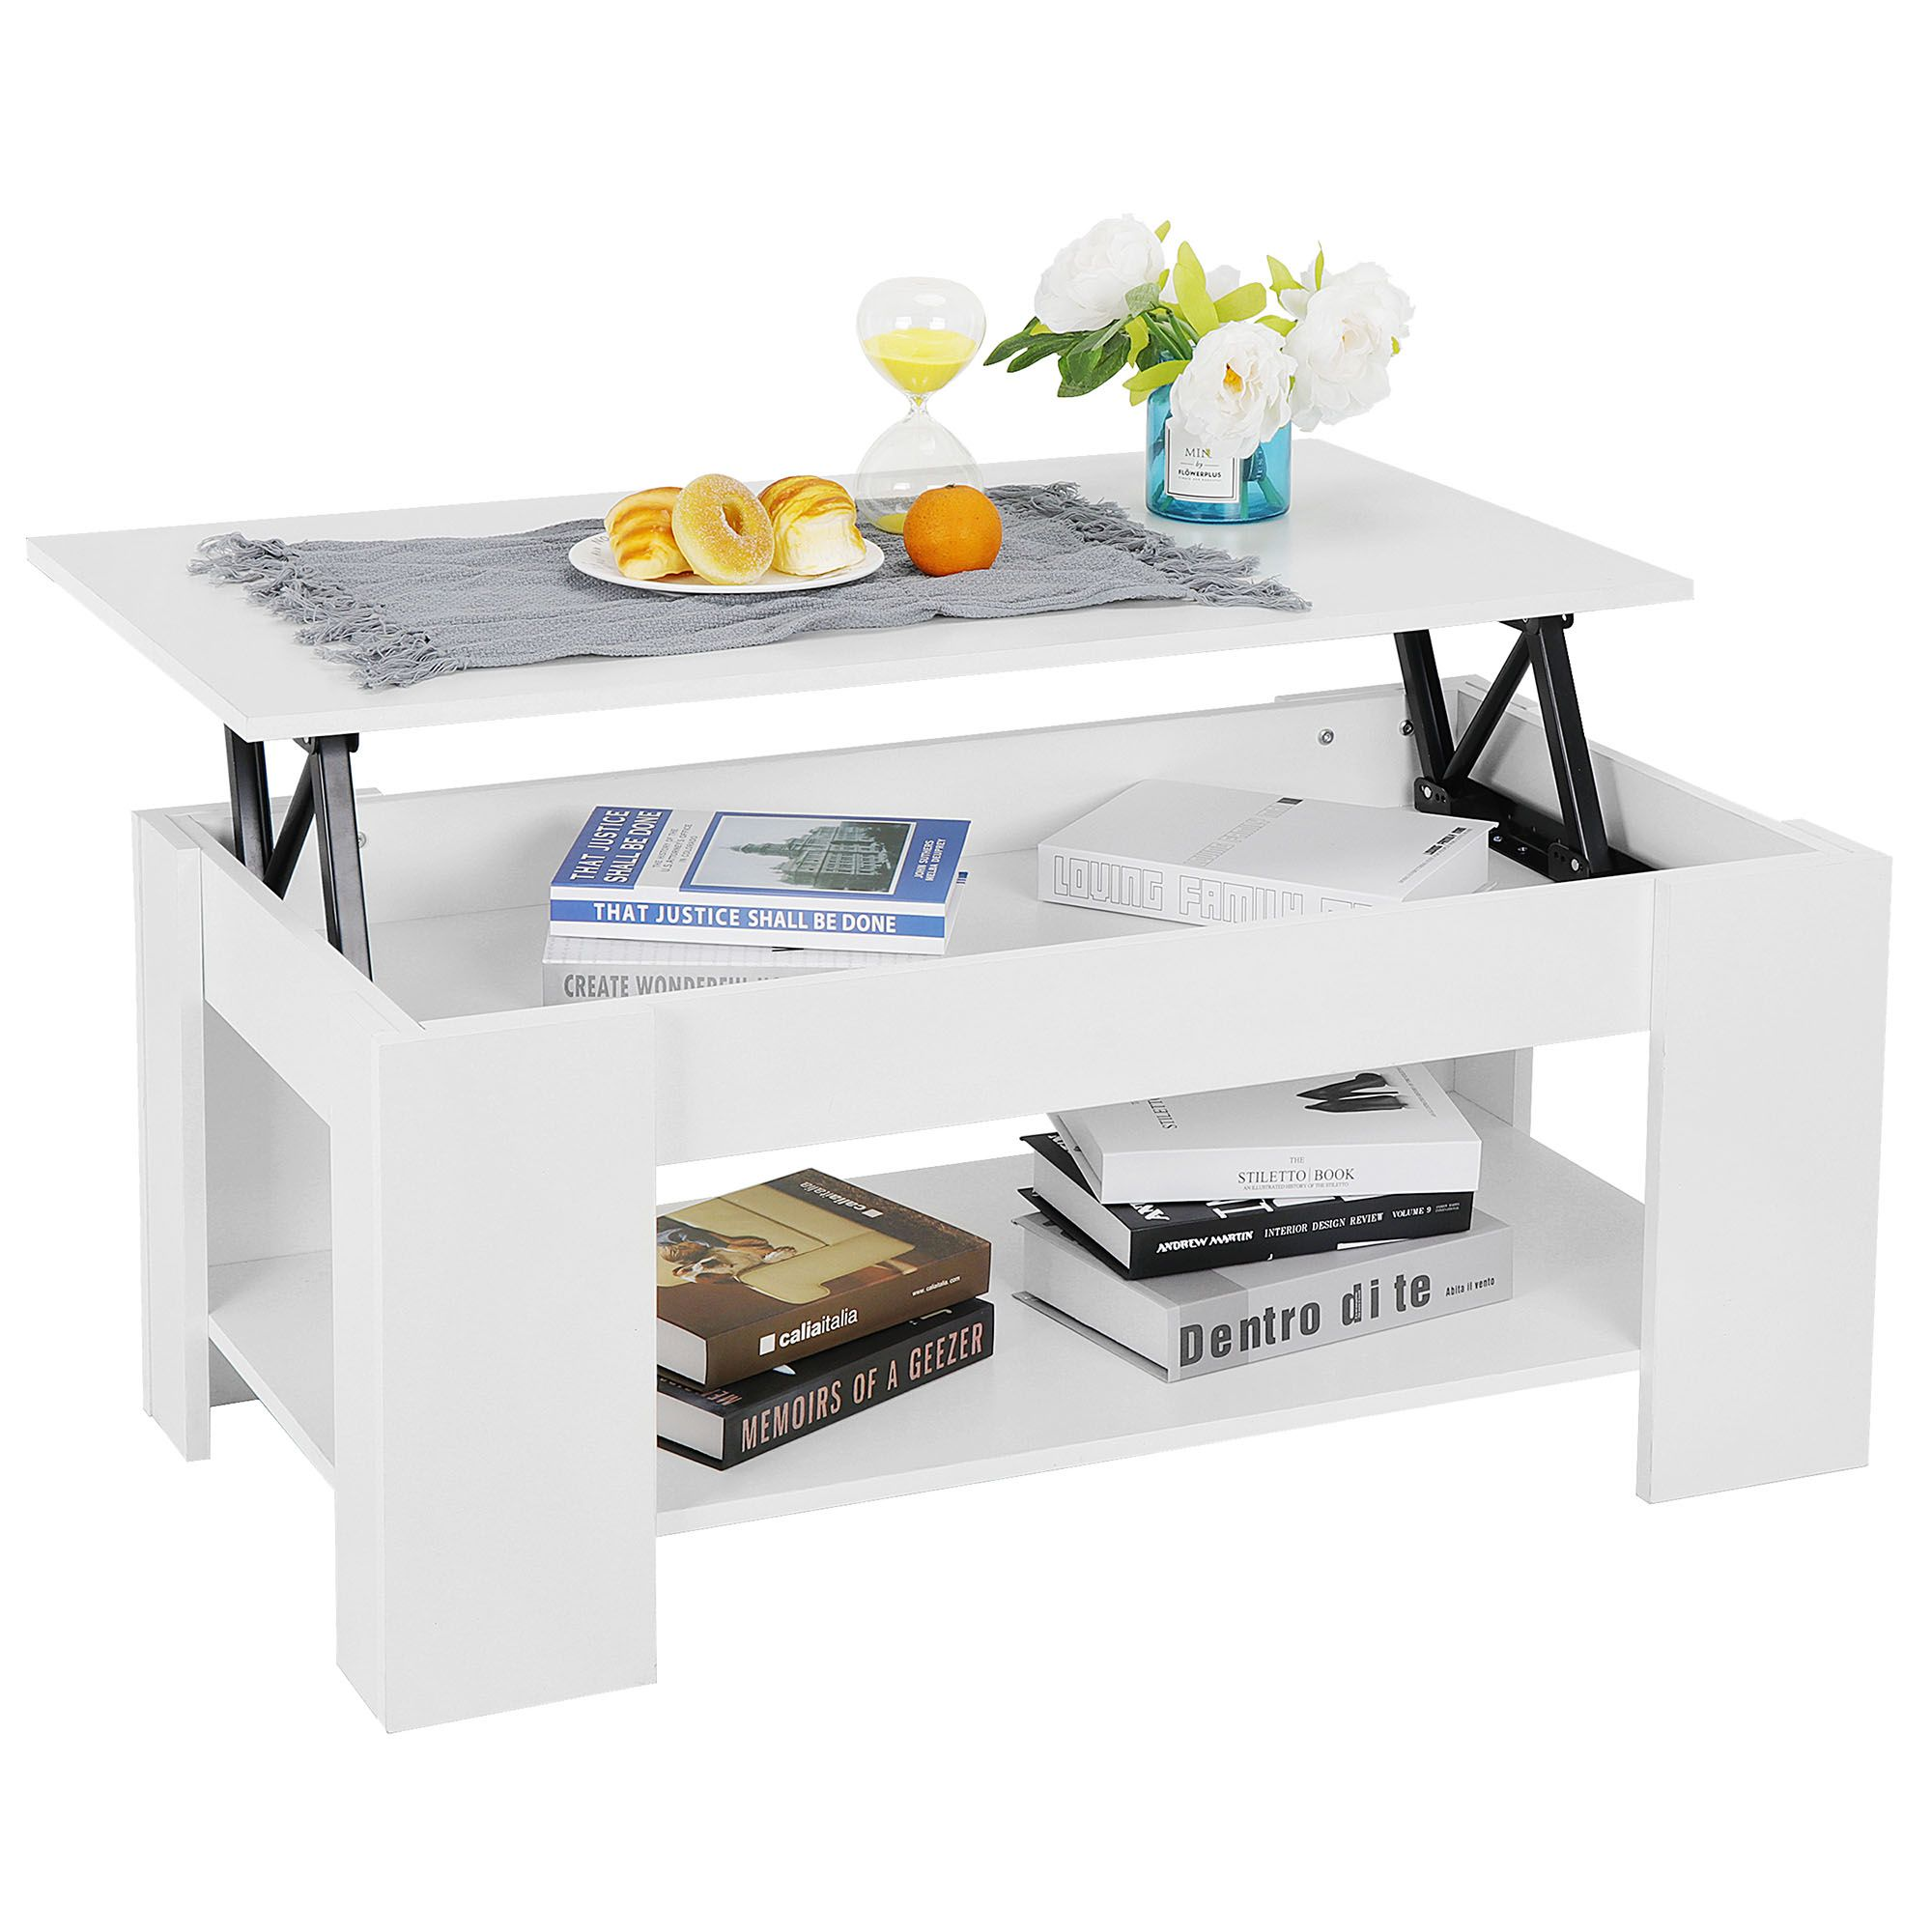 Segawe Lift Top Coffee Table W Hidden Compartment Storage Shelf Living Room Furniture White Walmart Com Coffee Table Wood Modern Shelving Coffee Table [ 2000 x 2000 Pixel ]